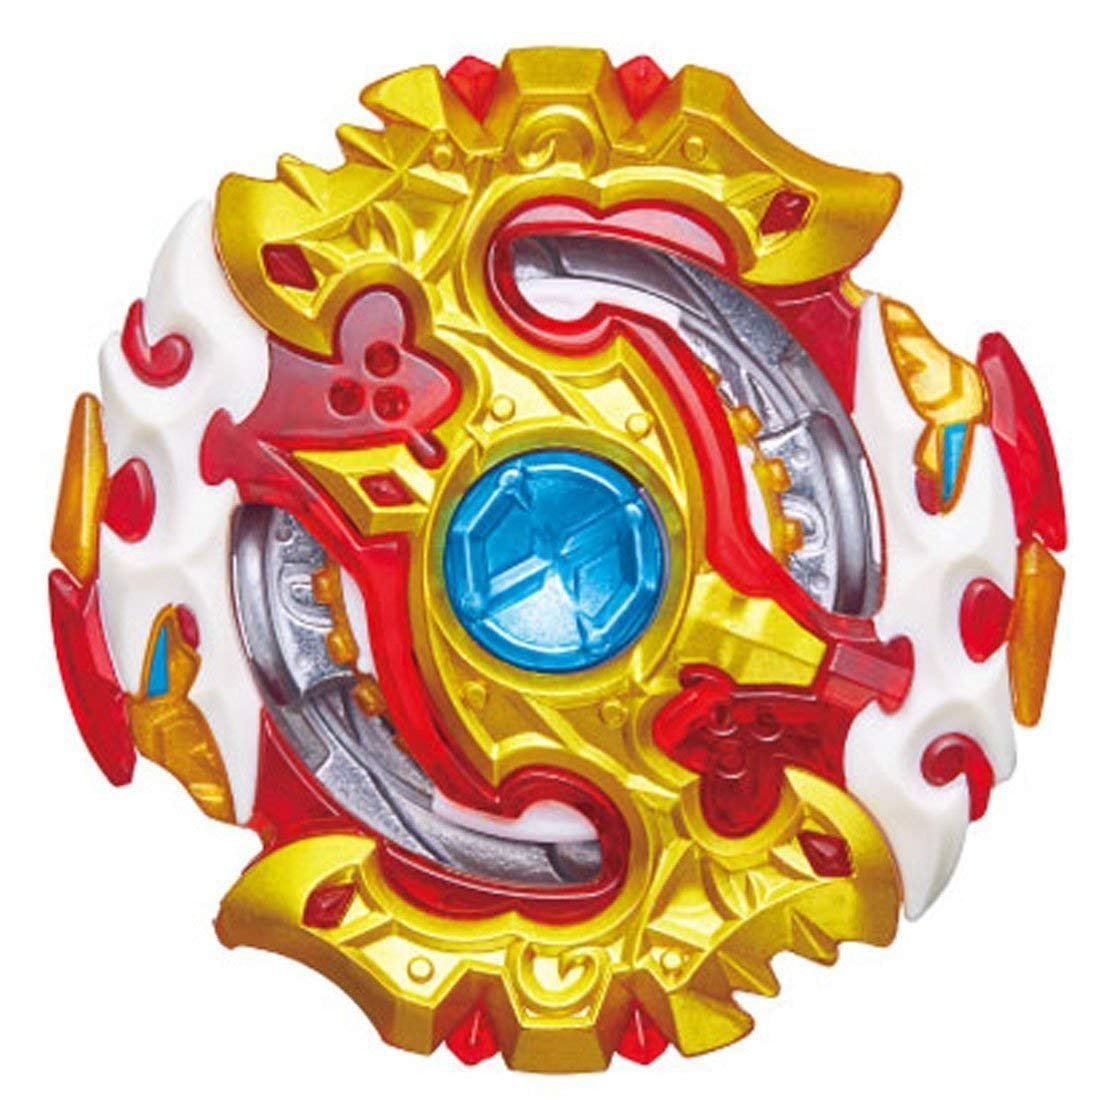 Pualine Beyblade Burst Evolution Gyro Toy Set Top with Beyblade Burst Launcher B-104/105 (2 Pack) Pauline WLM